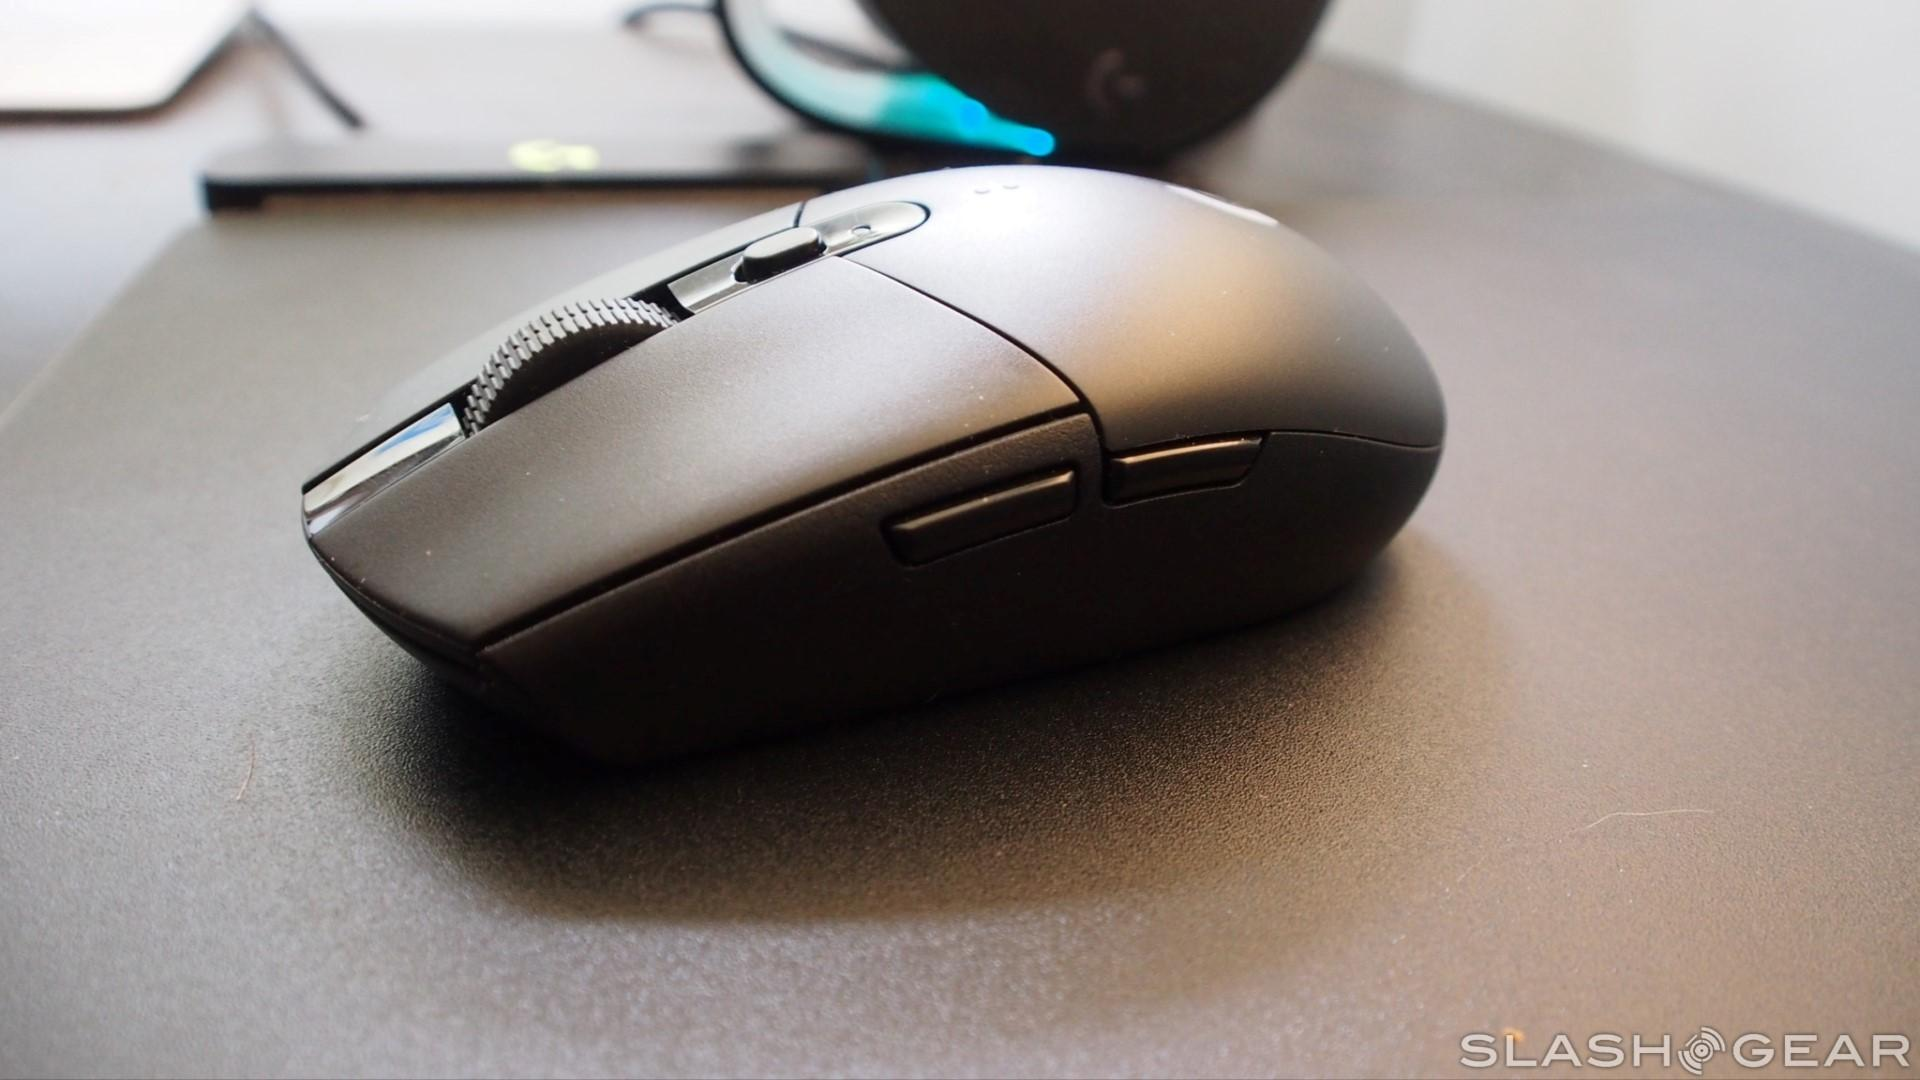 Logitech G305 review: A LIGHTSPEED gaming mouse for the